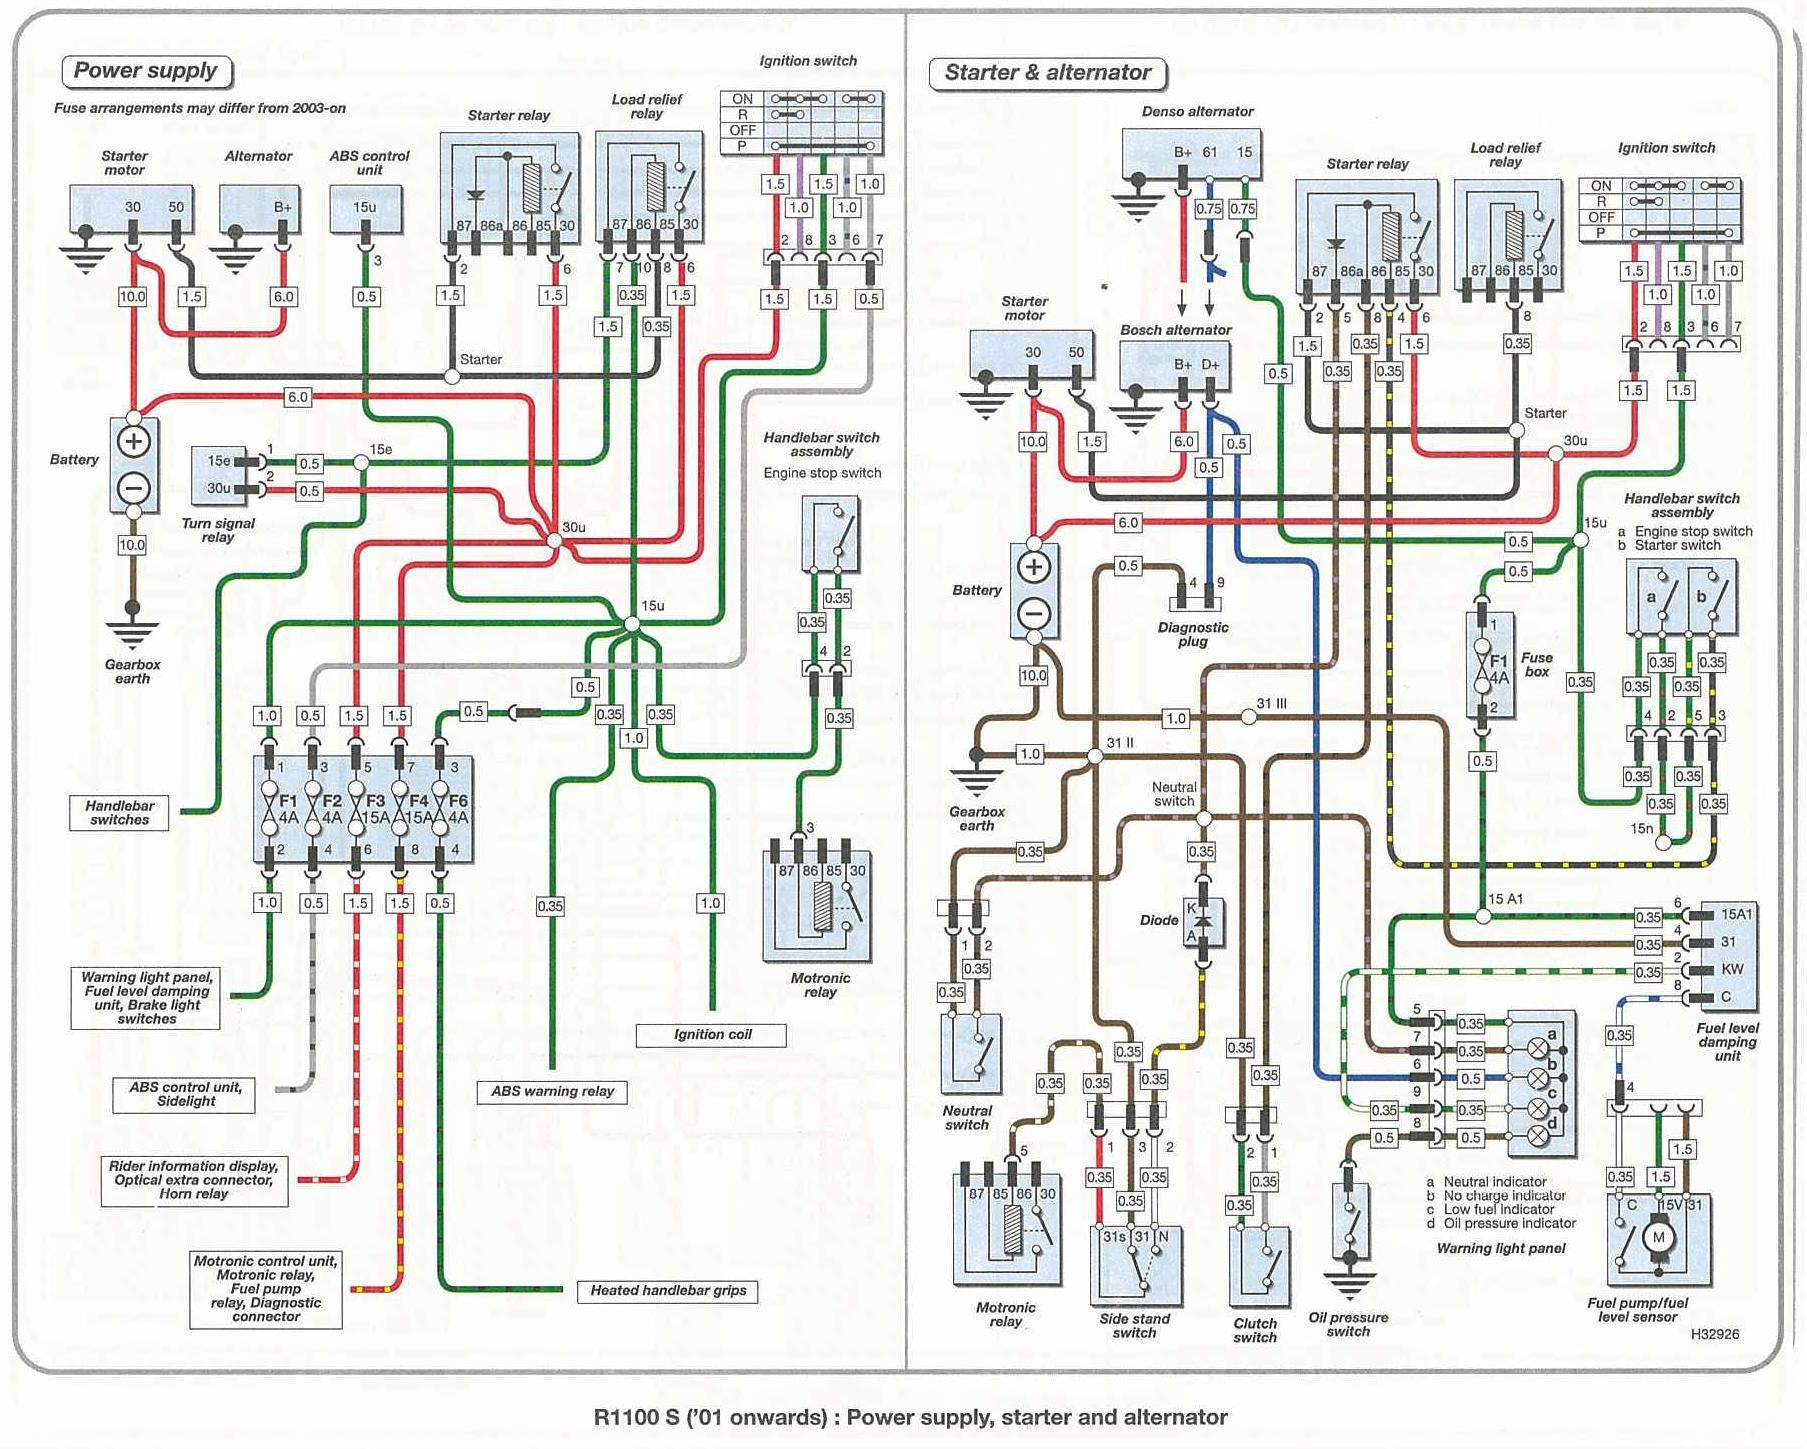 hight resolution of bmw f650 wiring diagram wiring diagram mega wiring diagram bmw f 650 cs bmw f650 wiring diagram